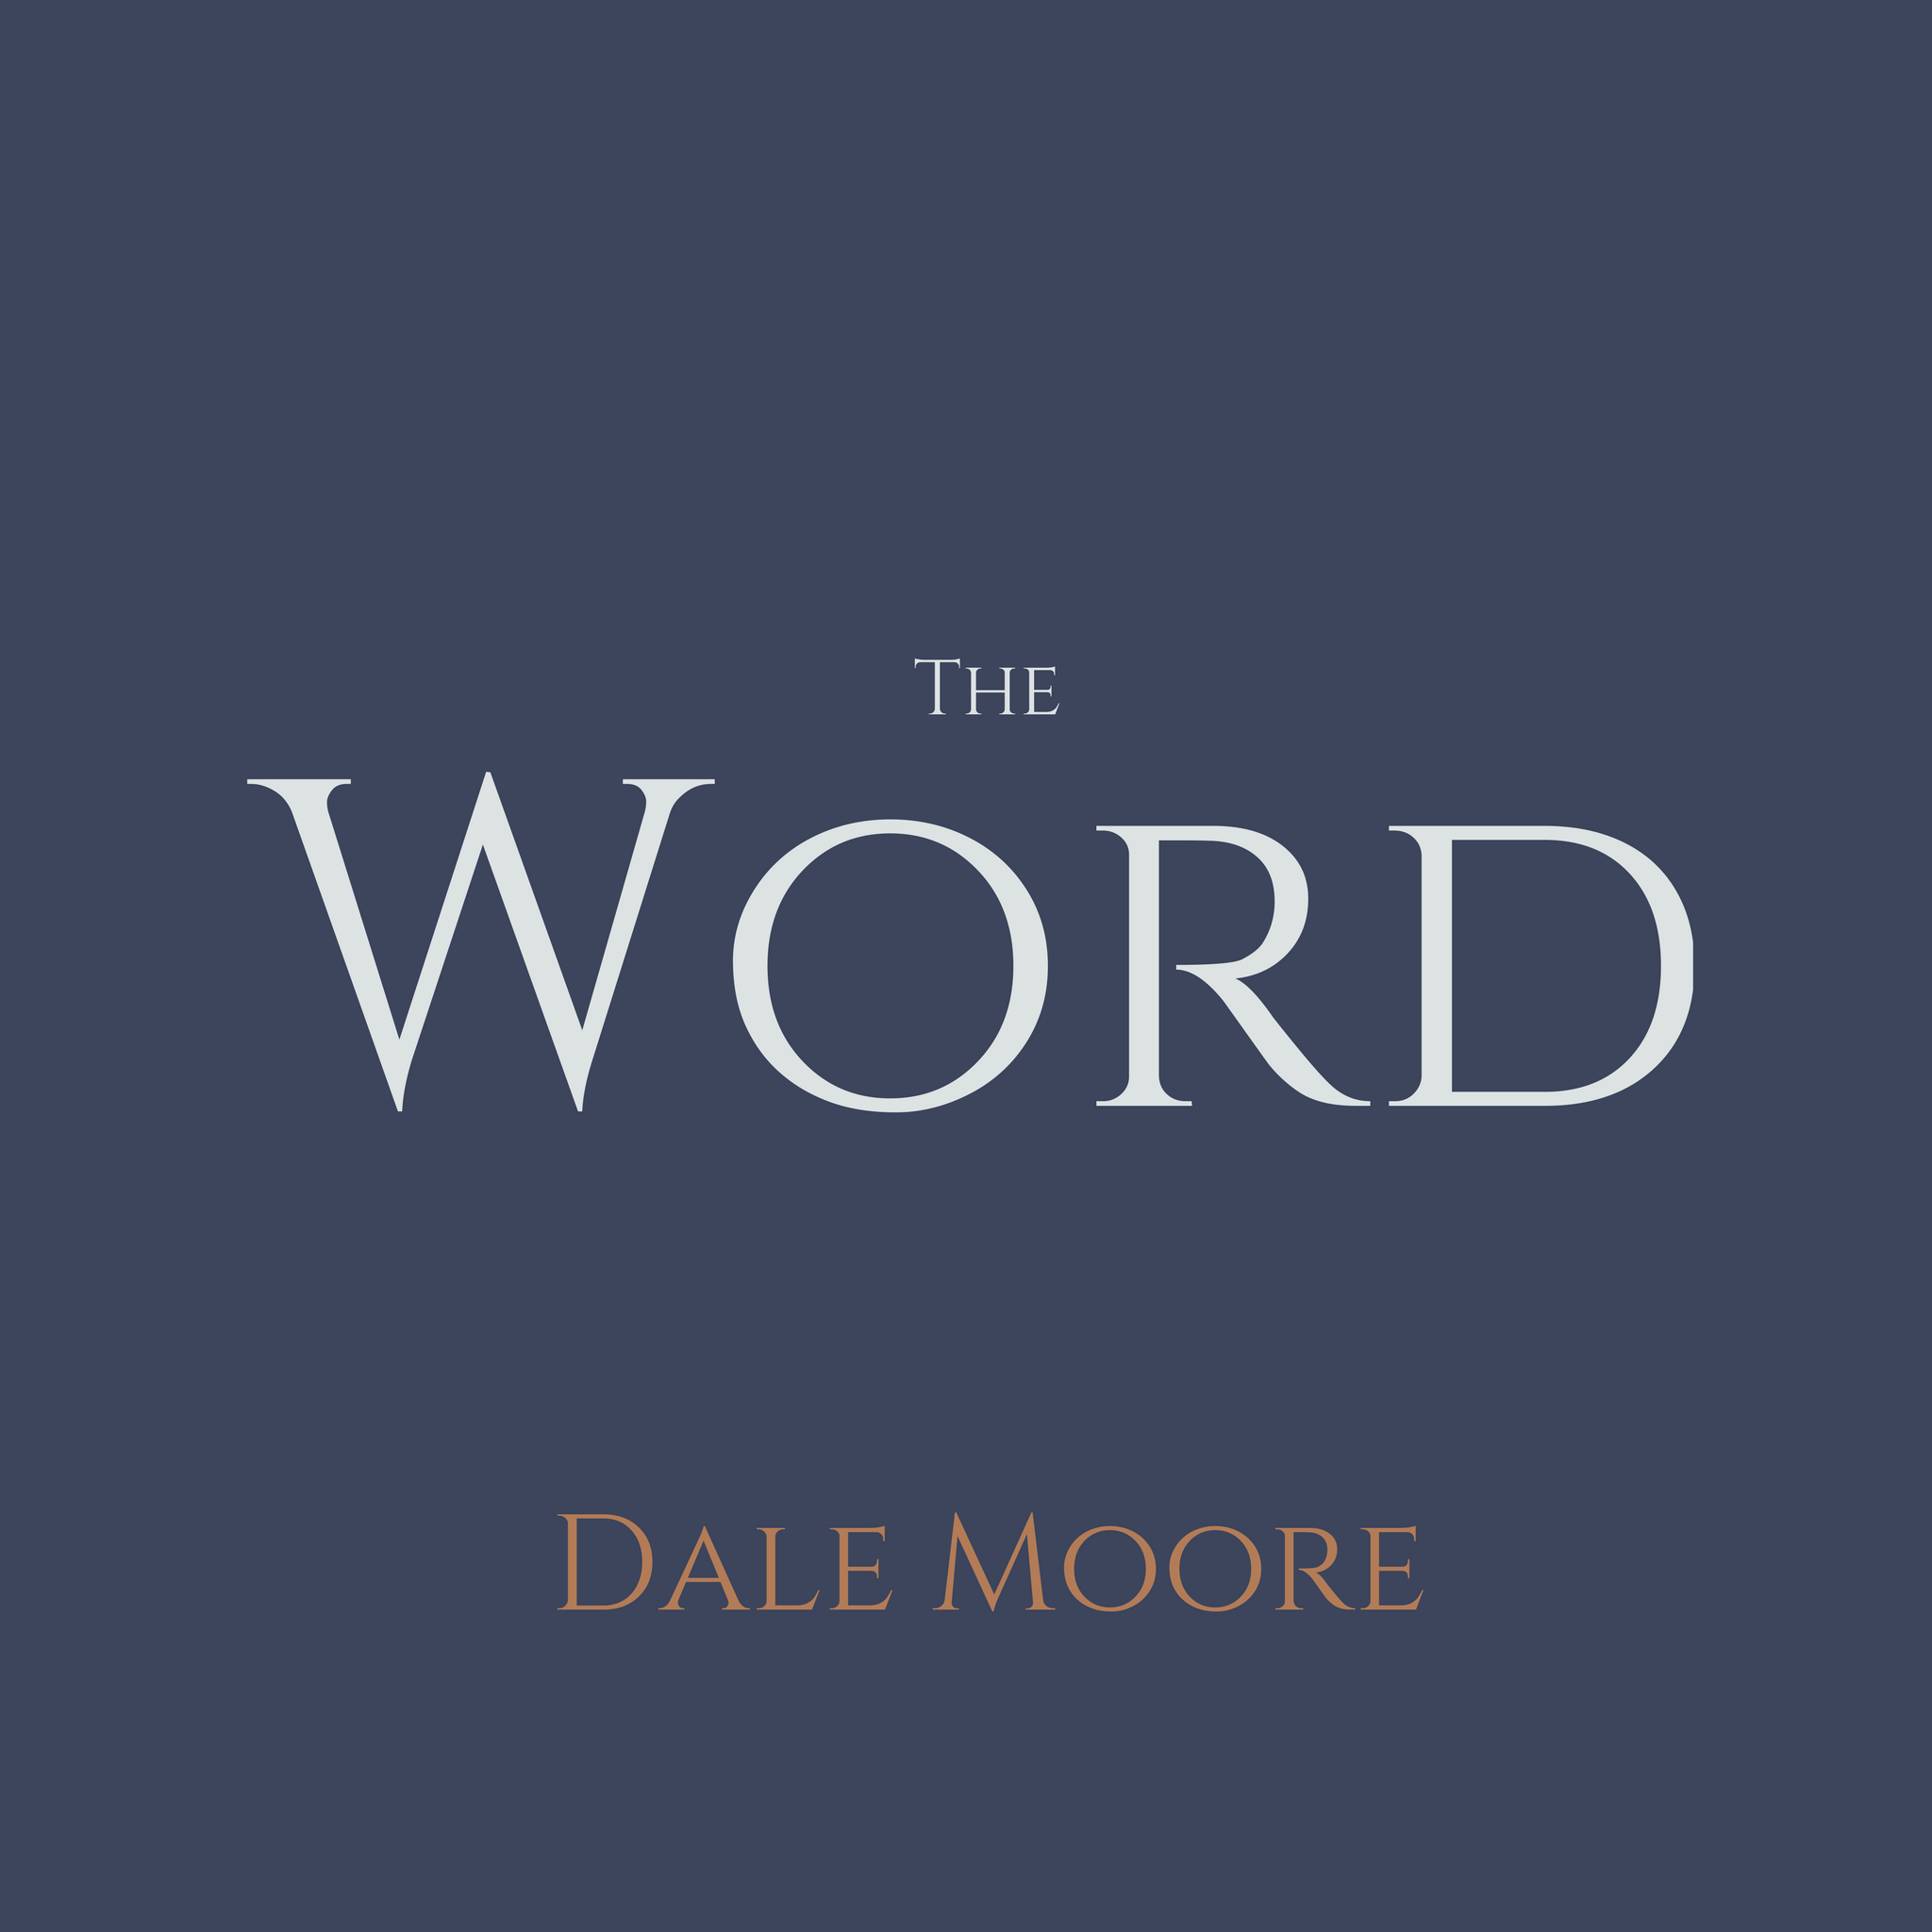 The Word: Episode 0591 1 Timothy 3:8-10